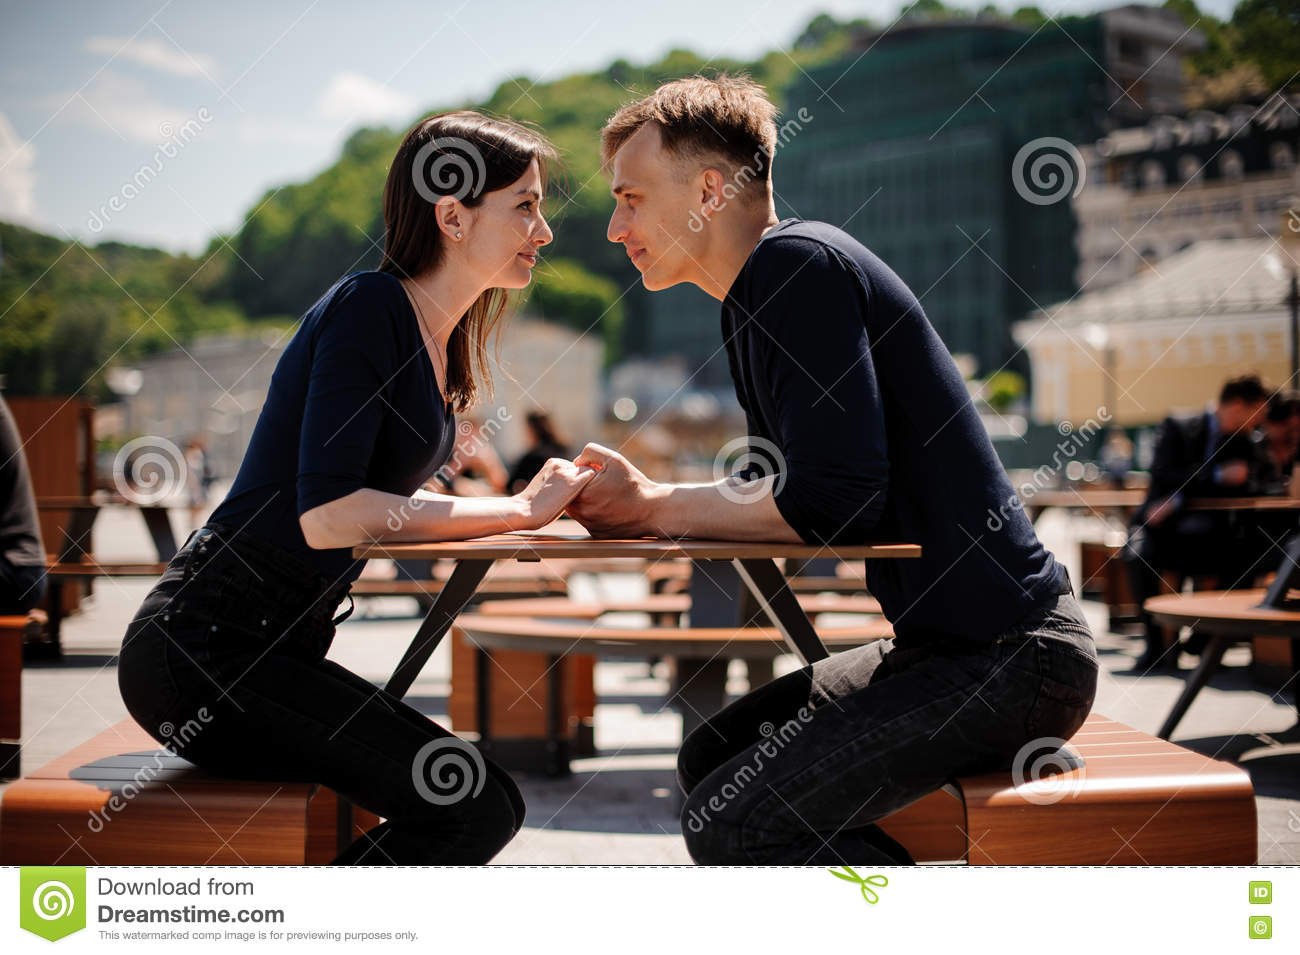 Young and attractive couple holding hands about to kiss over table in restaurant